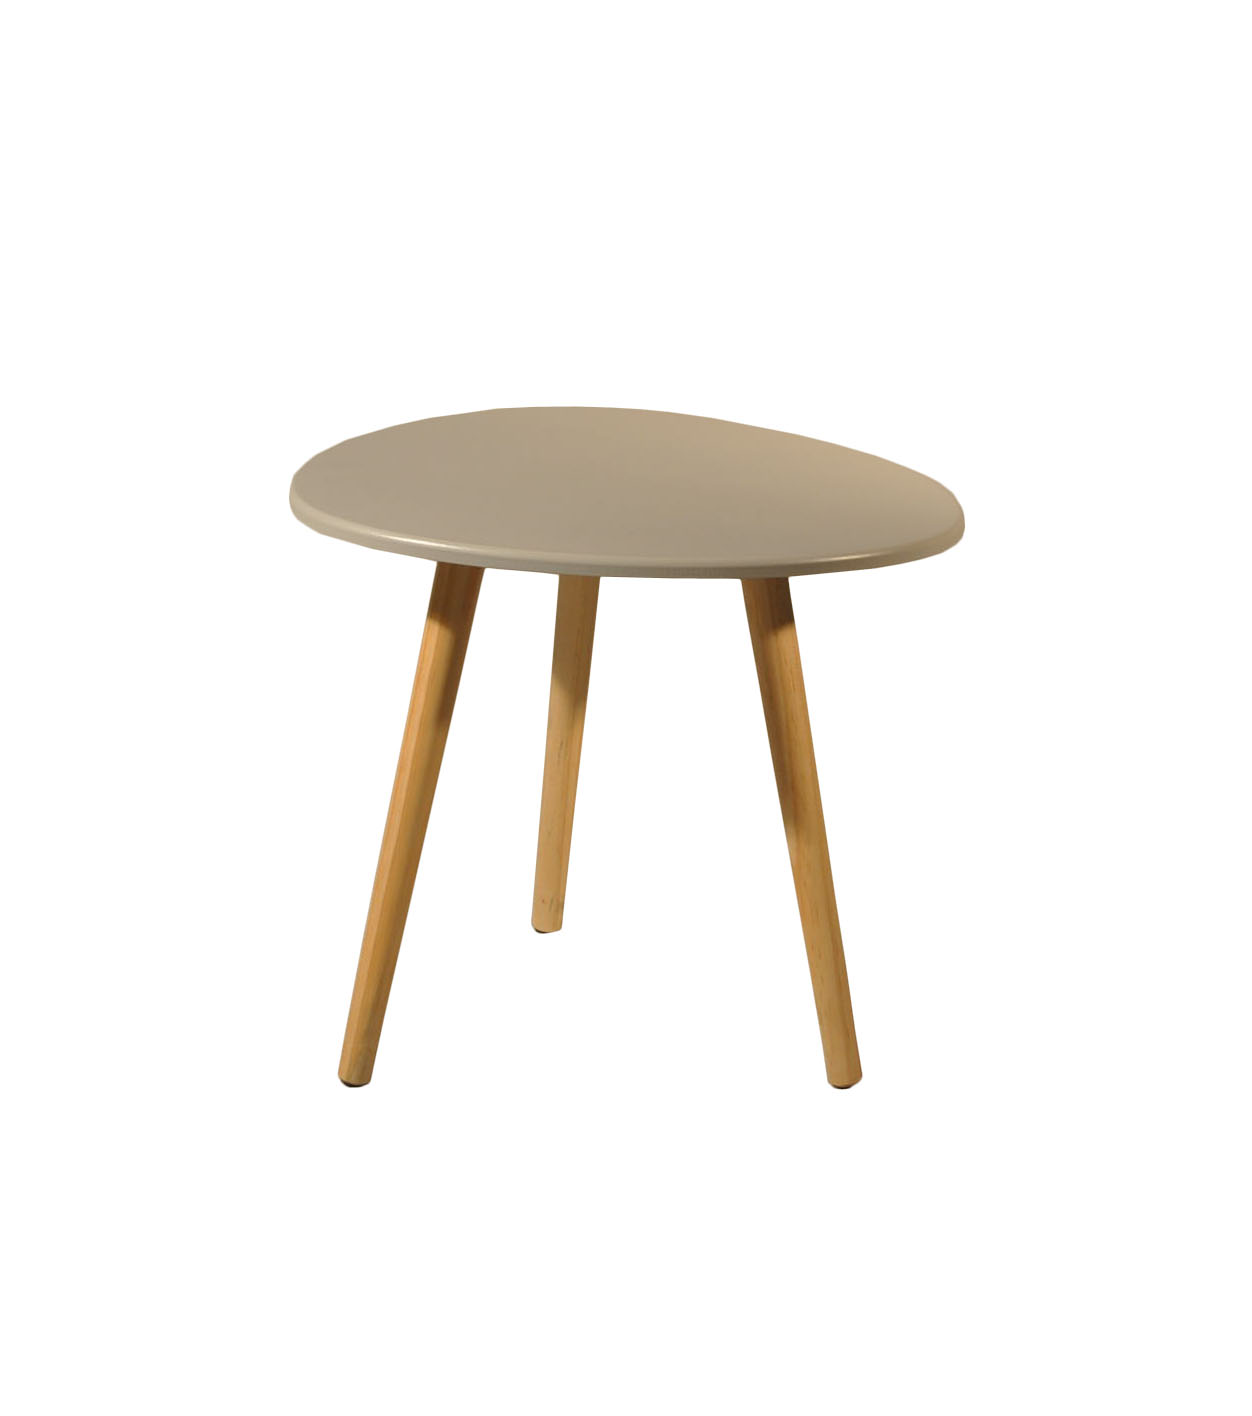 Petite table scandinave en forme de galet grise demeure for Table scandinave grise